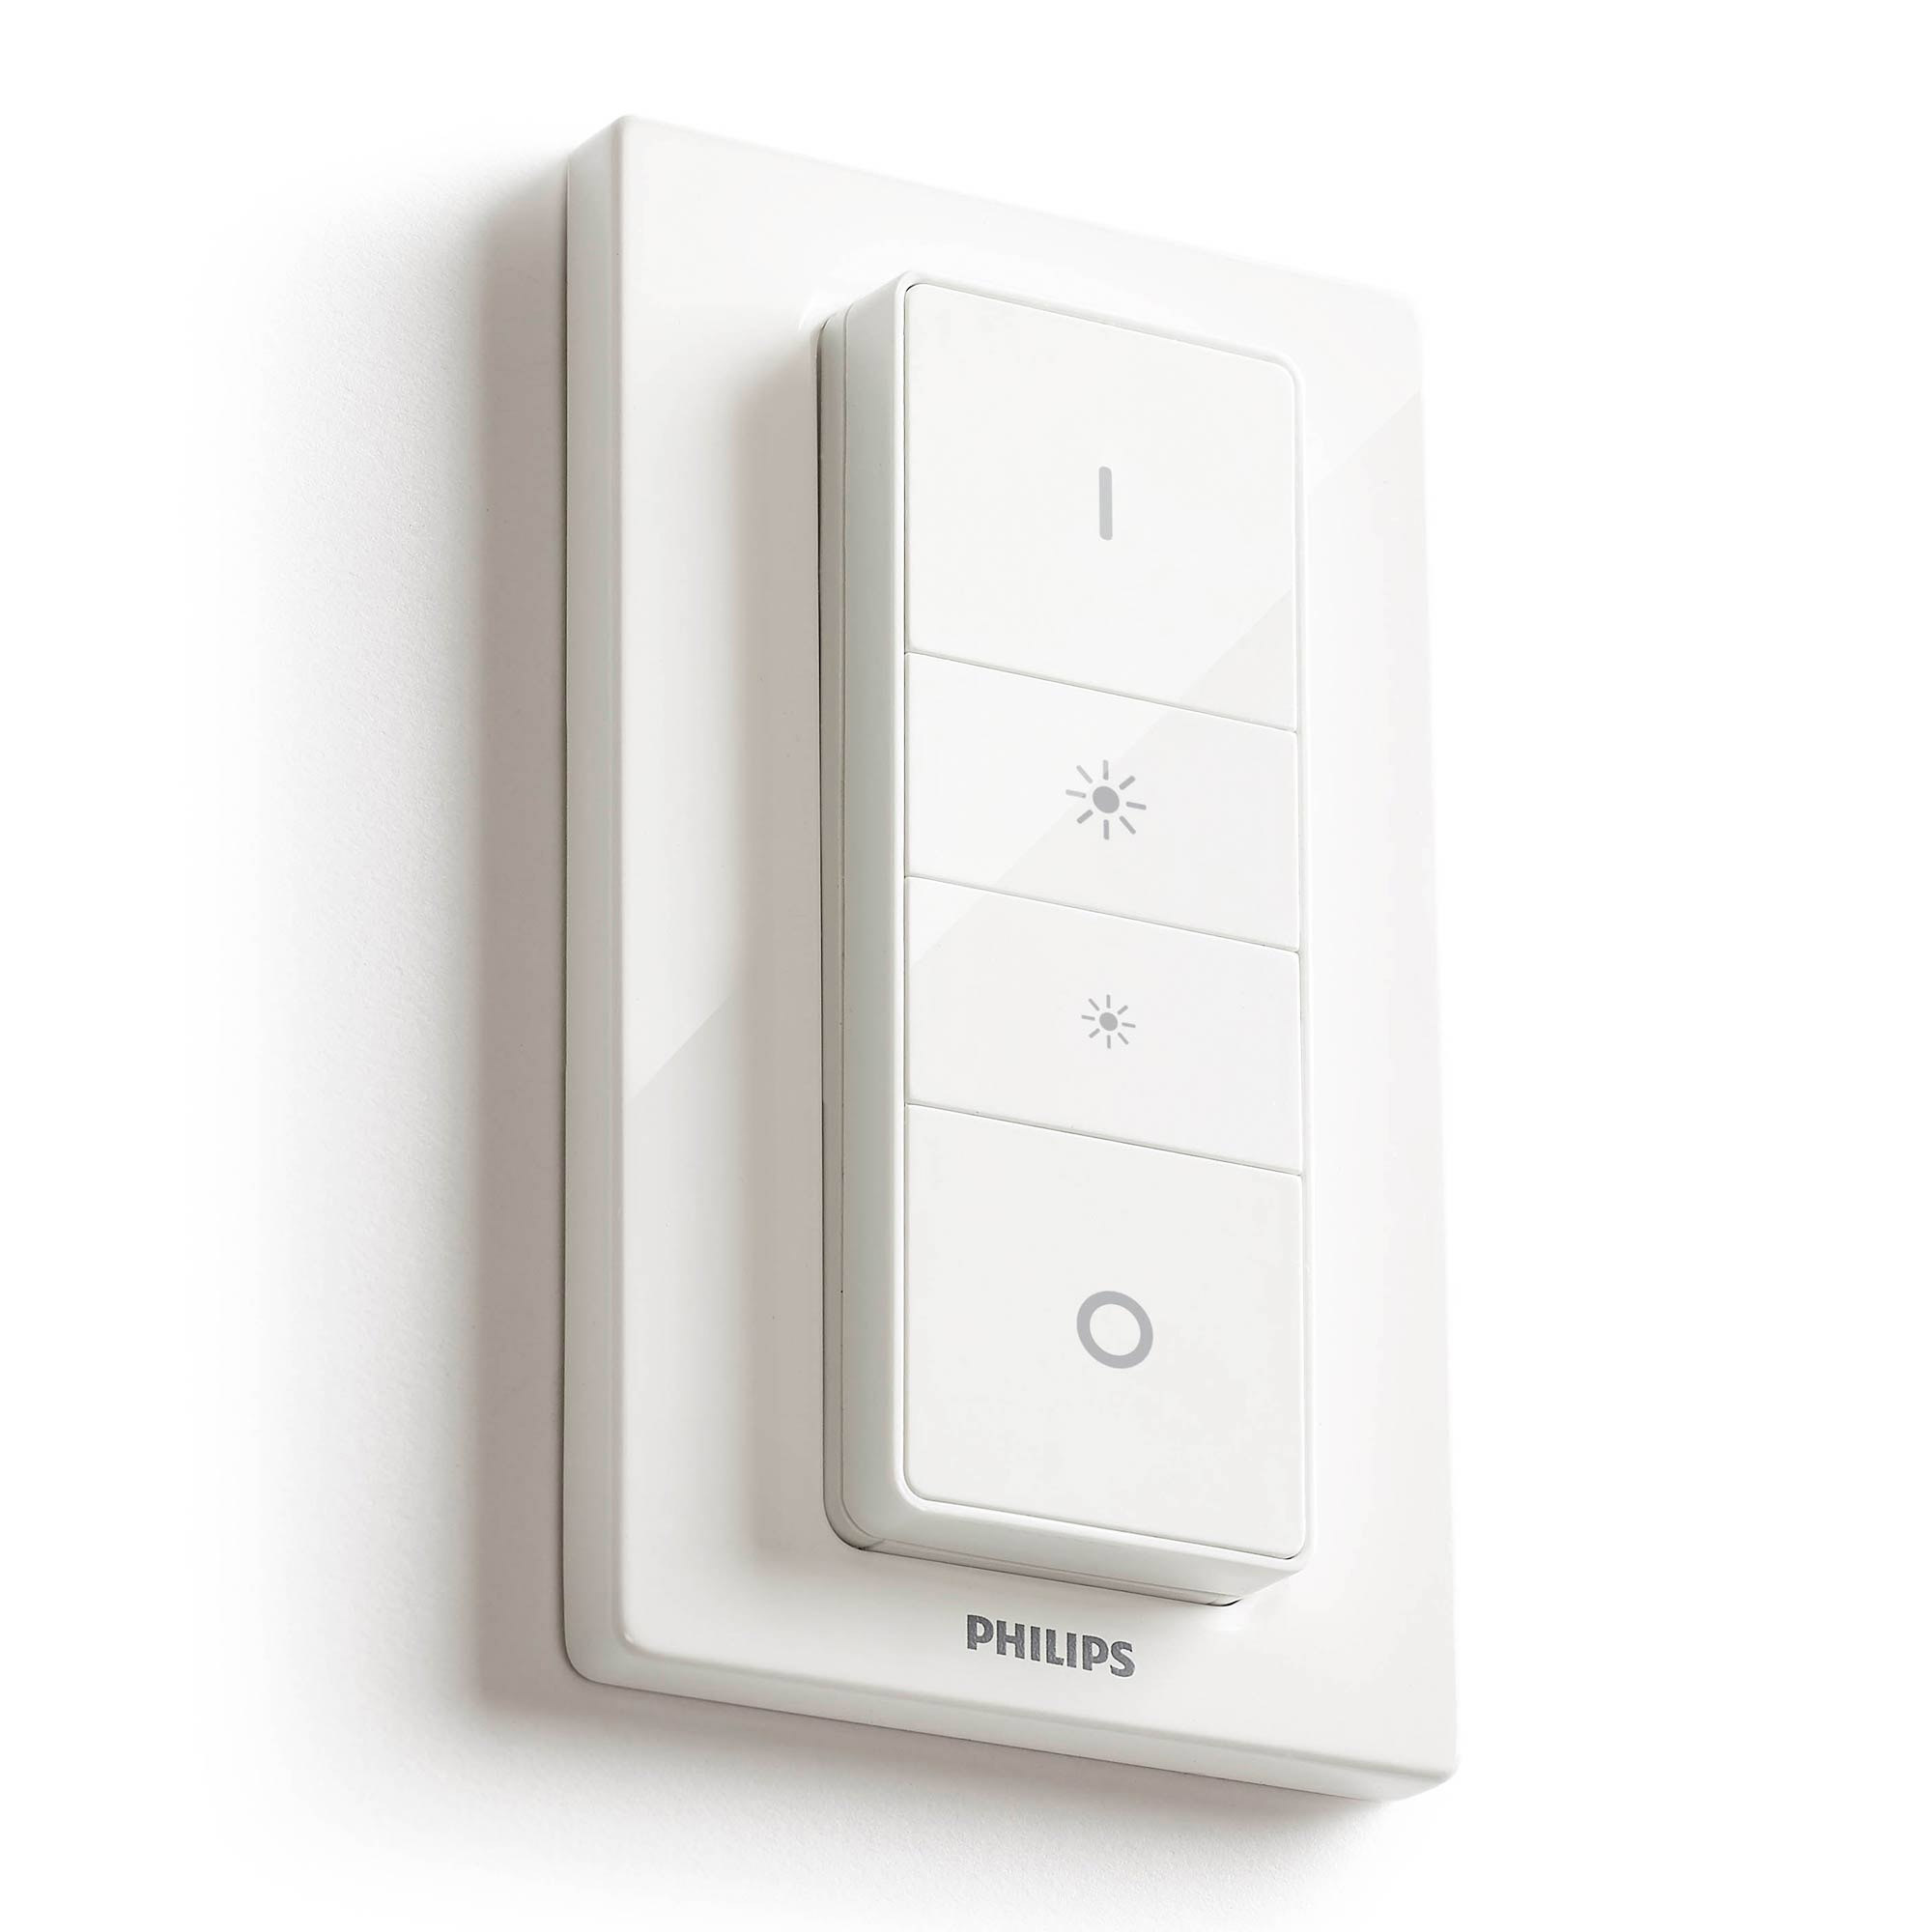 Kæmpestor Philips Hue 929001173761 | Philips Hue Dimmer Switch WE02